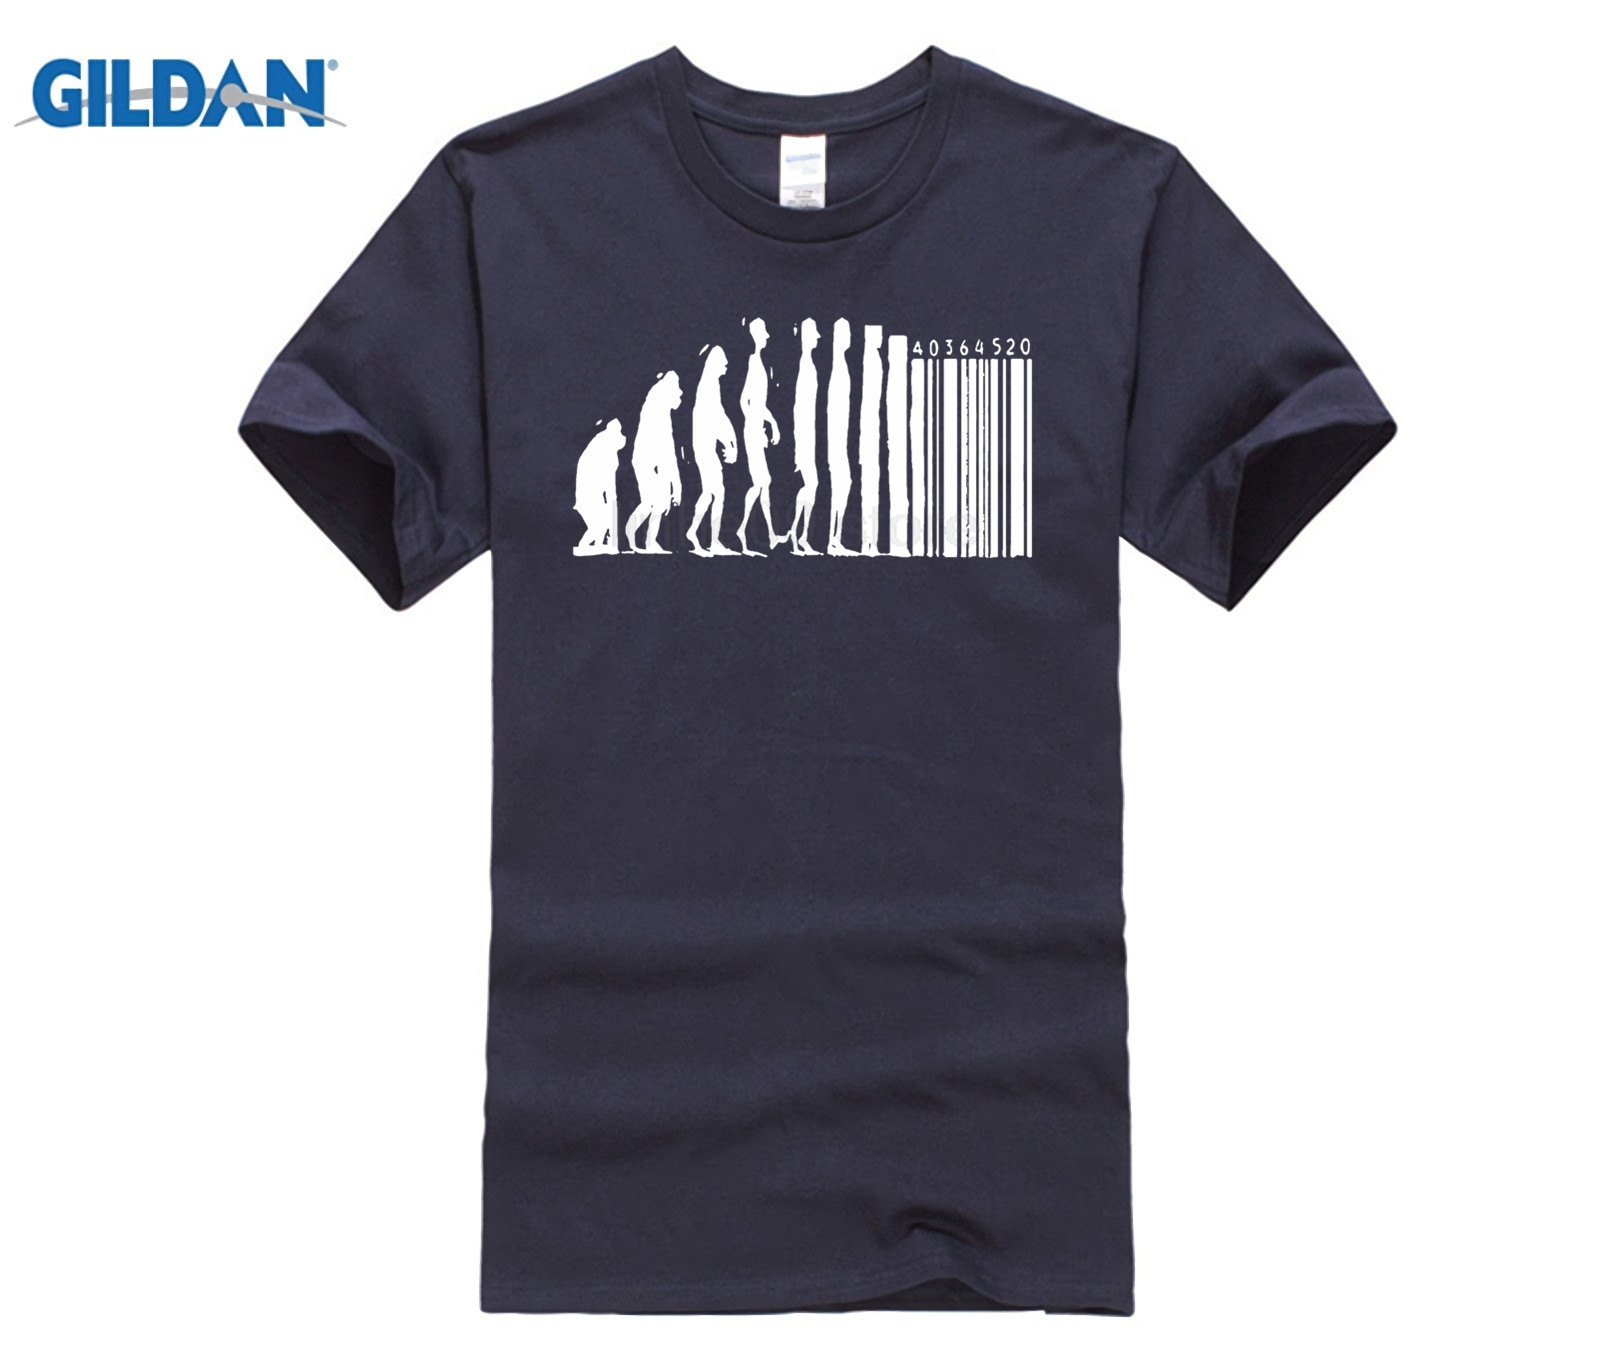 T Shirts Human Evolution Banksy Mankind Monkey Barcode Capitalism Anarchy Tee shirt Design Website image